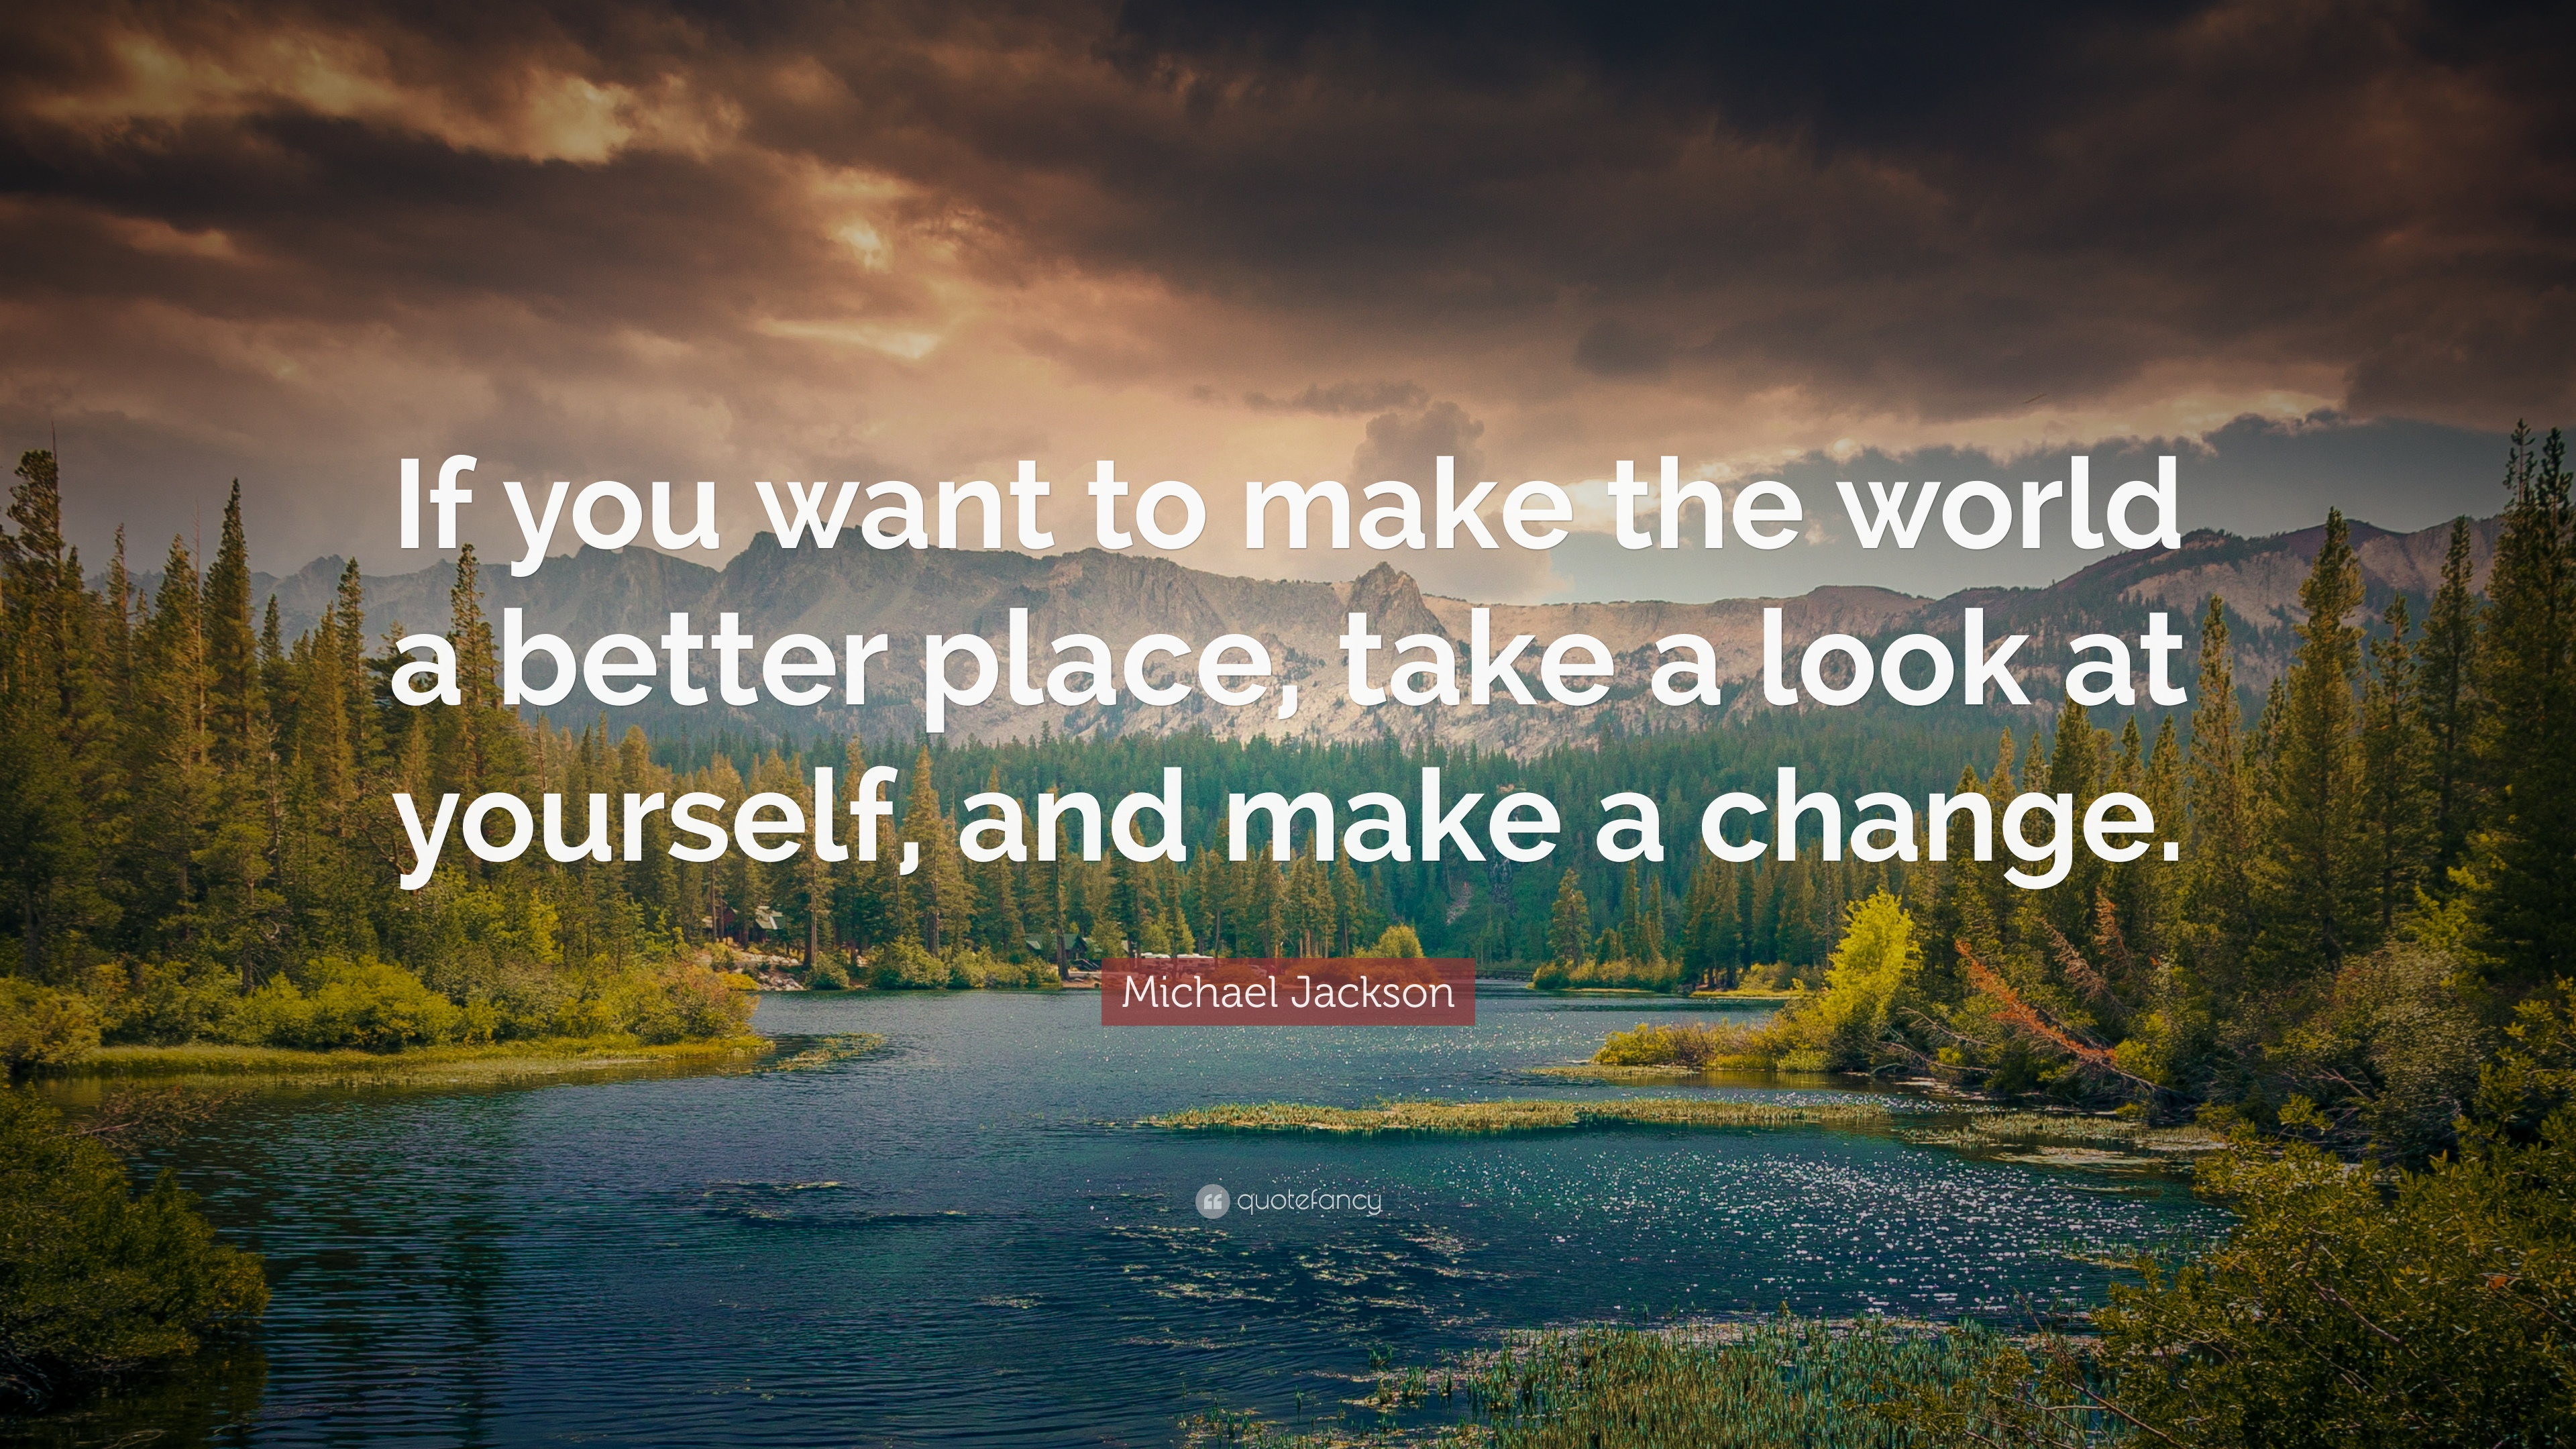 Michael Jackson Quote If You Want To Make The World A Better Place